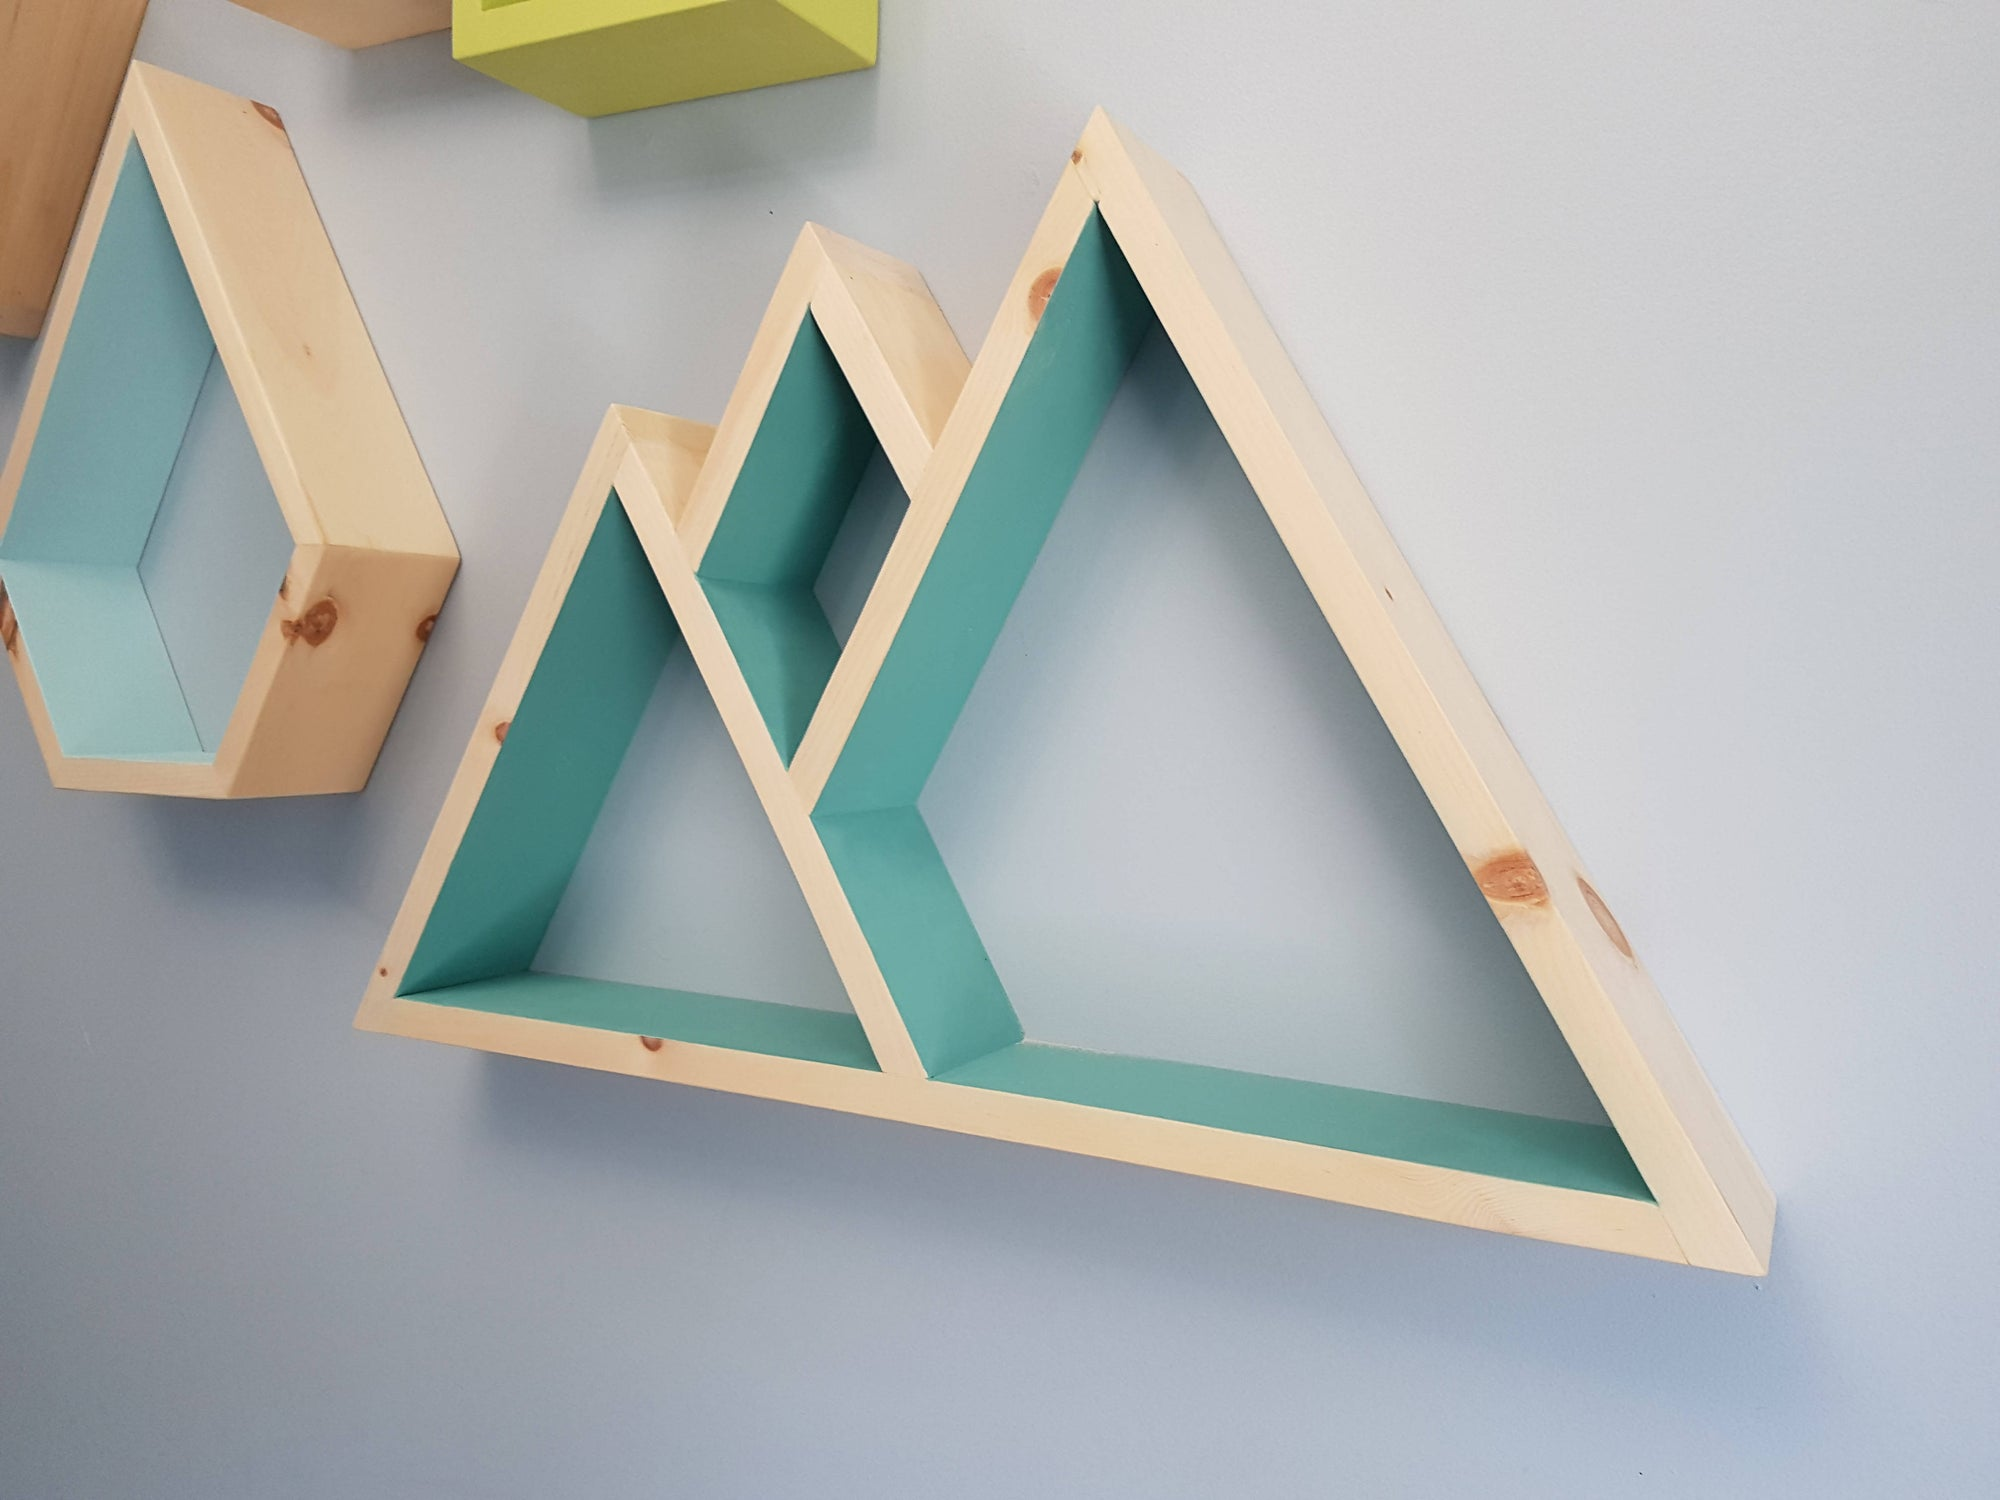 Mountain Shelf, Floating Shelve, Geometric Shelves, Mountain Shelf Decor, Essential Oil Shelf, Wood Mountain Shelf, Mountain Shelves